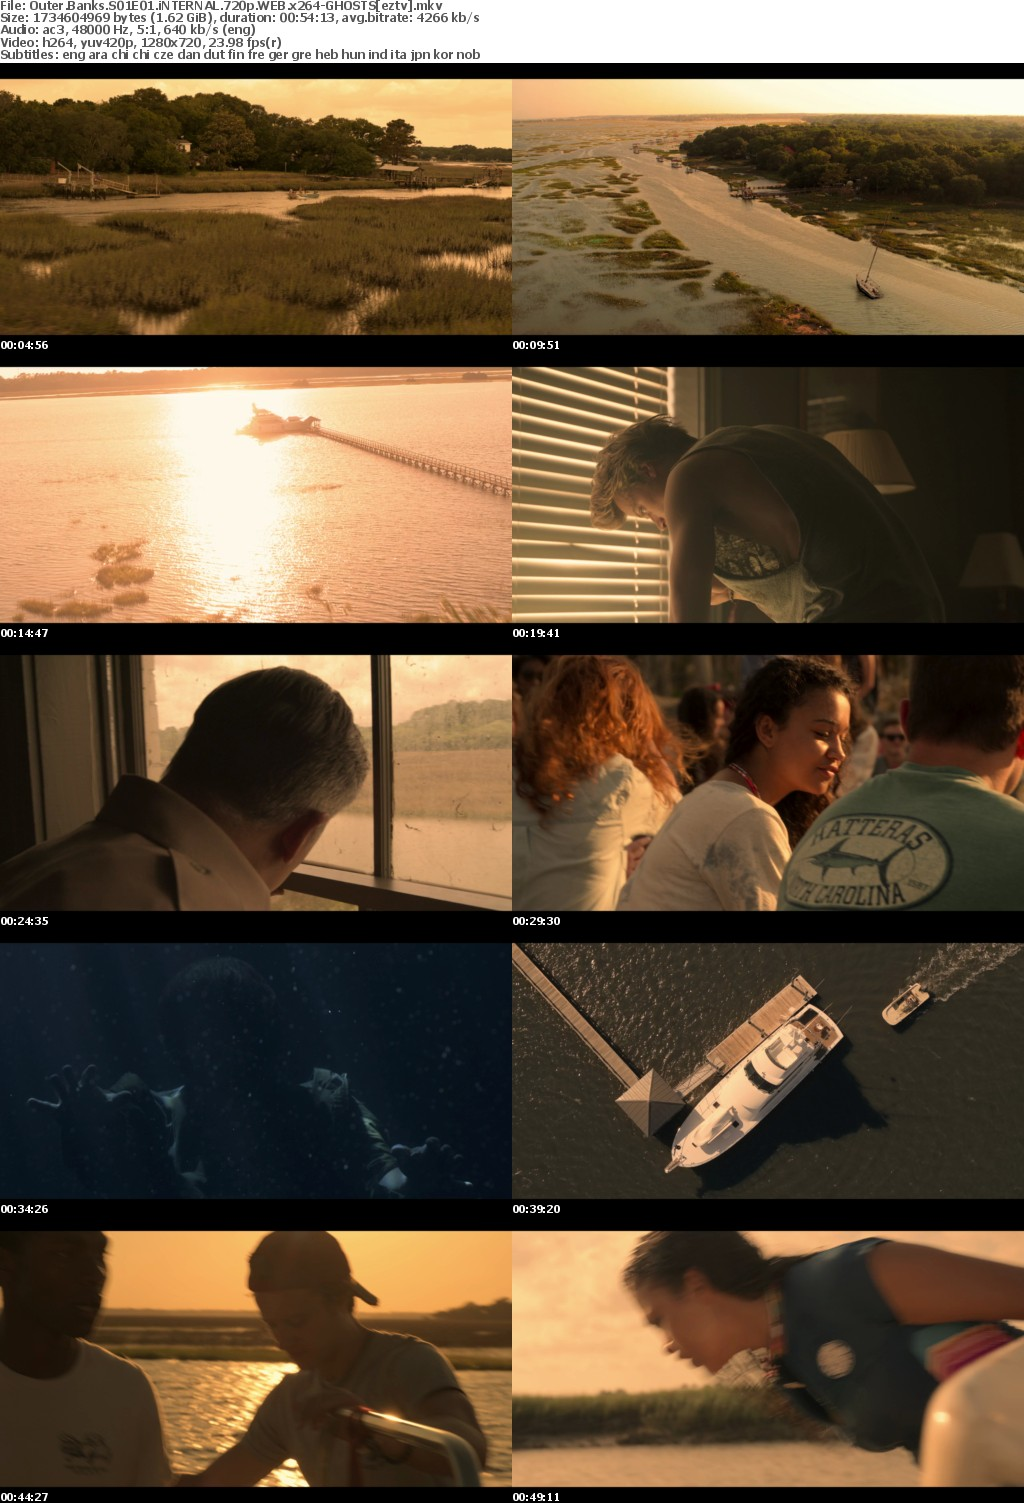 Outer Banks S01E01 iNTERNAL 720p WEB x264-GHOSTS